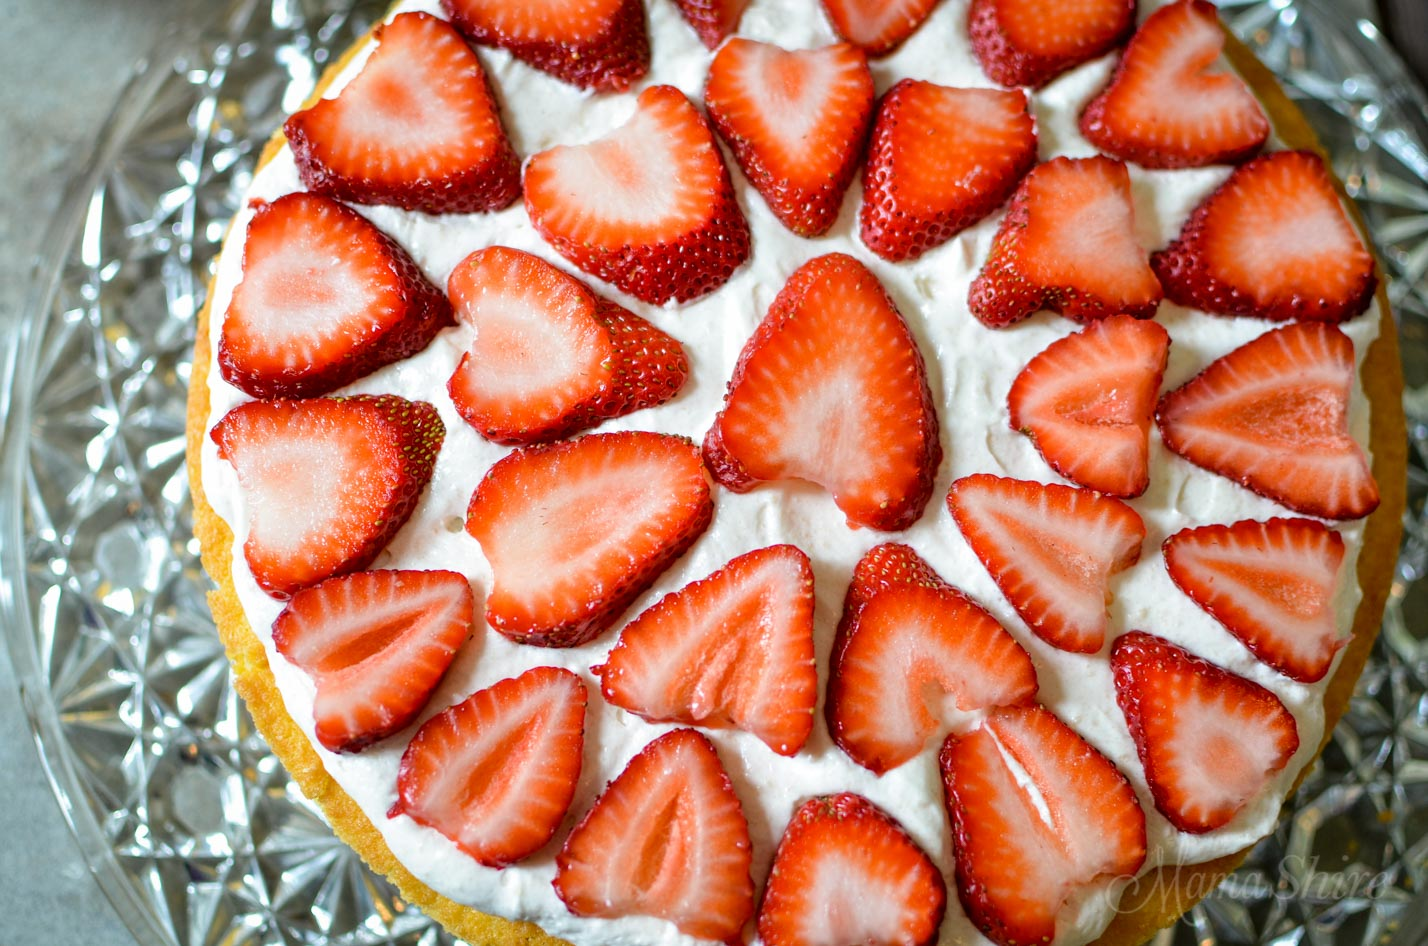 Strawberry Shortcake Grain-free, Dairy-free, Sugar-free